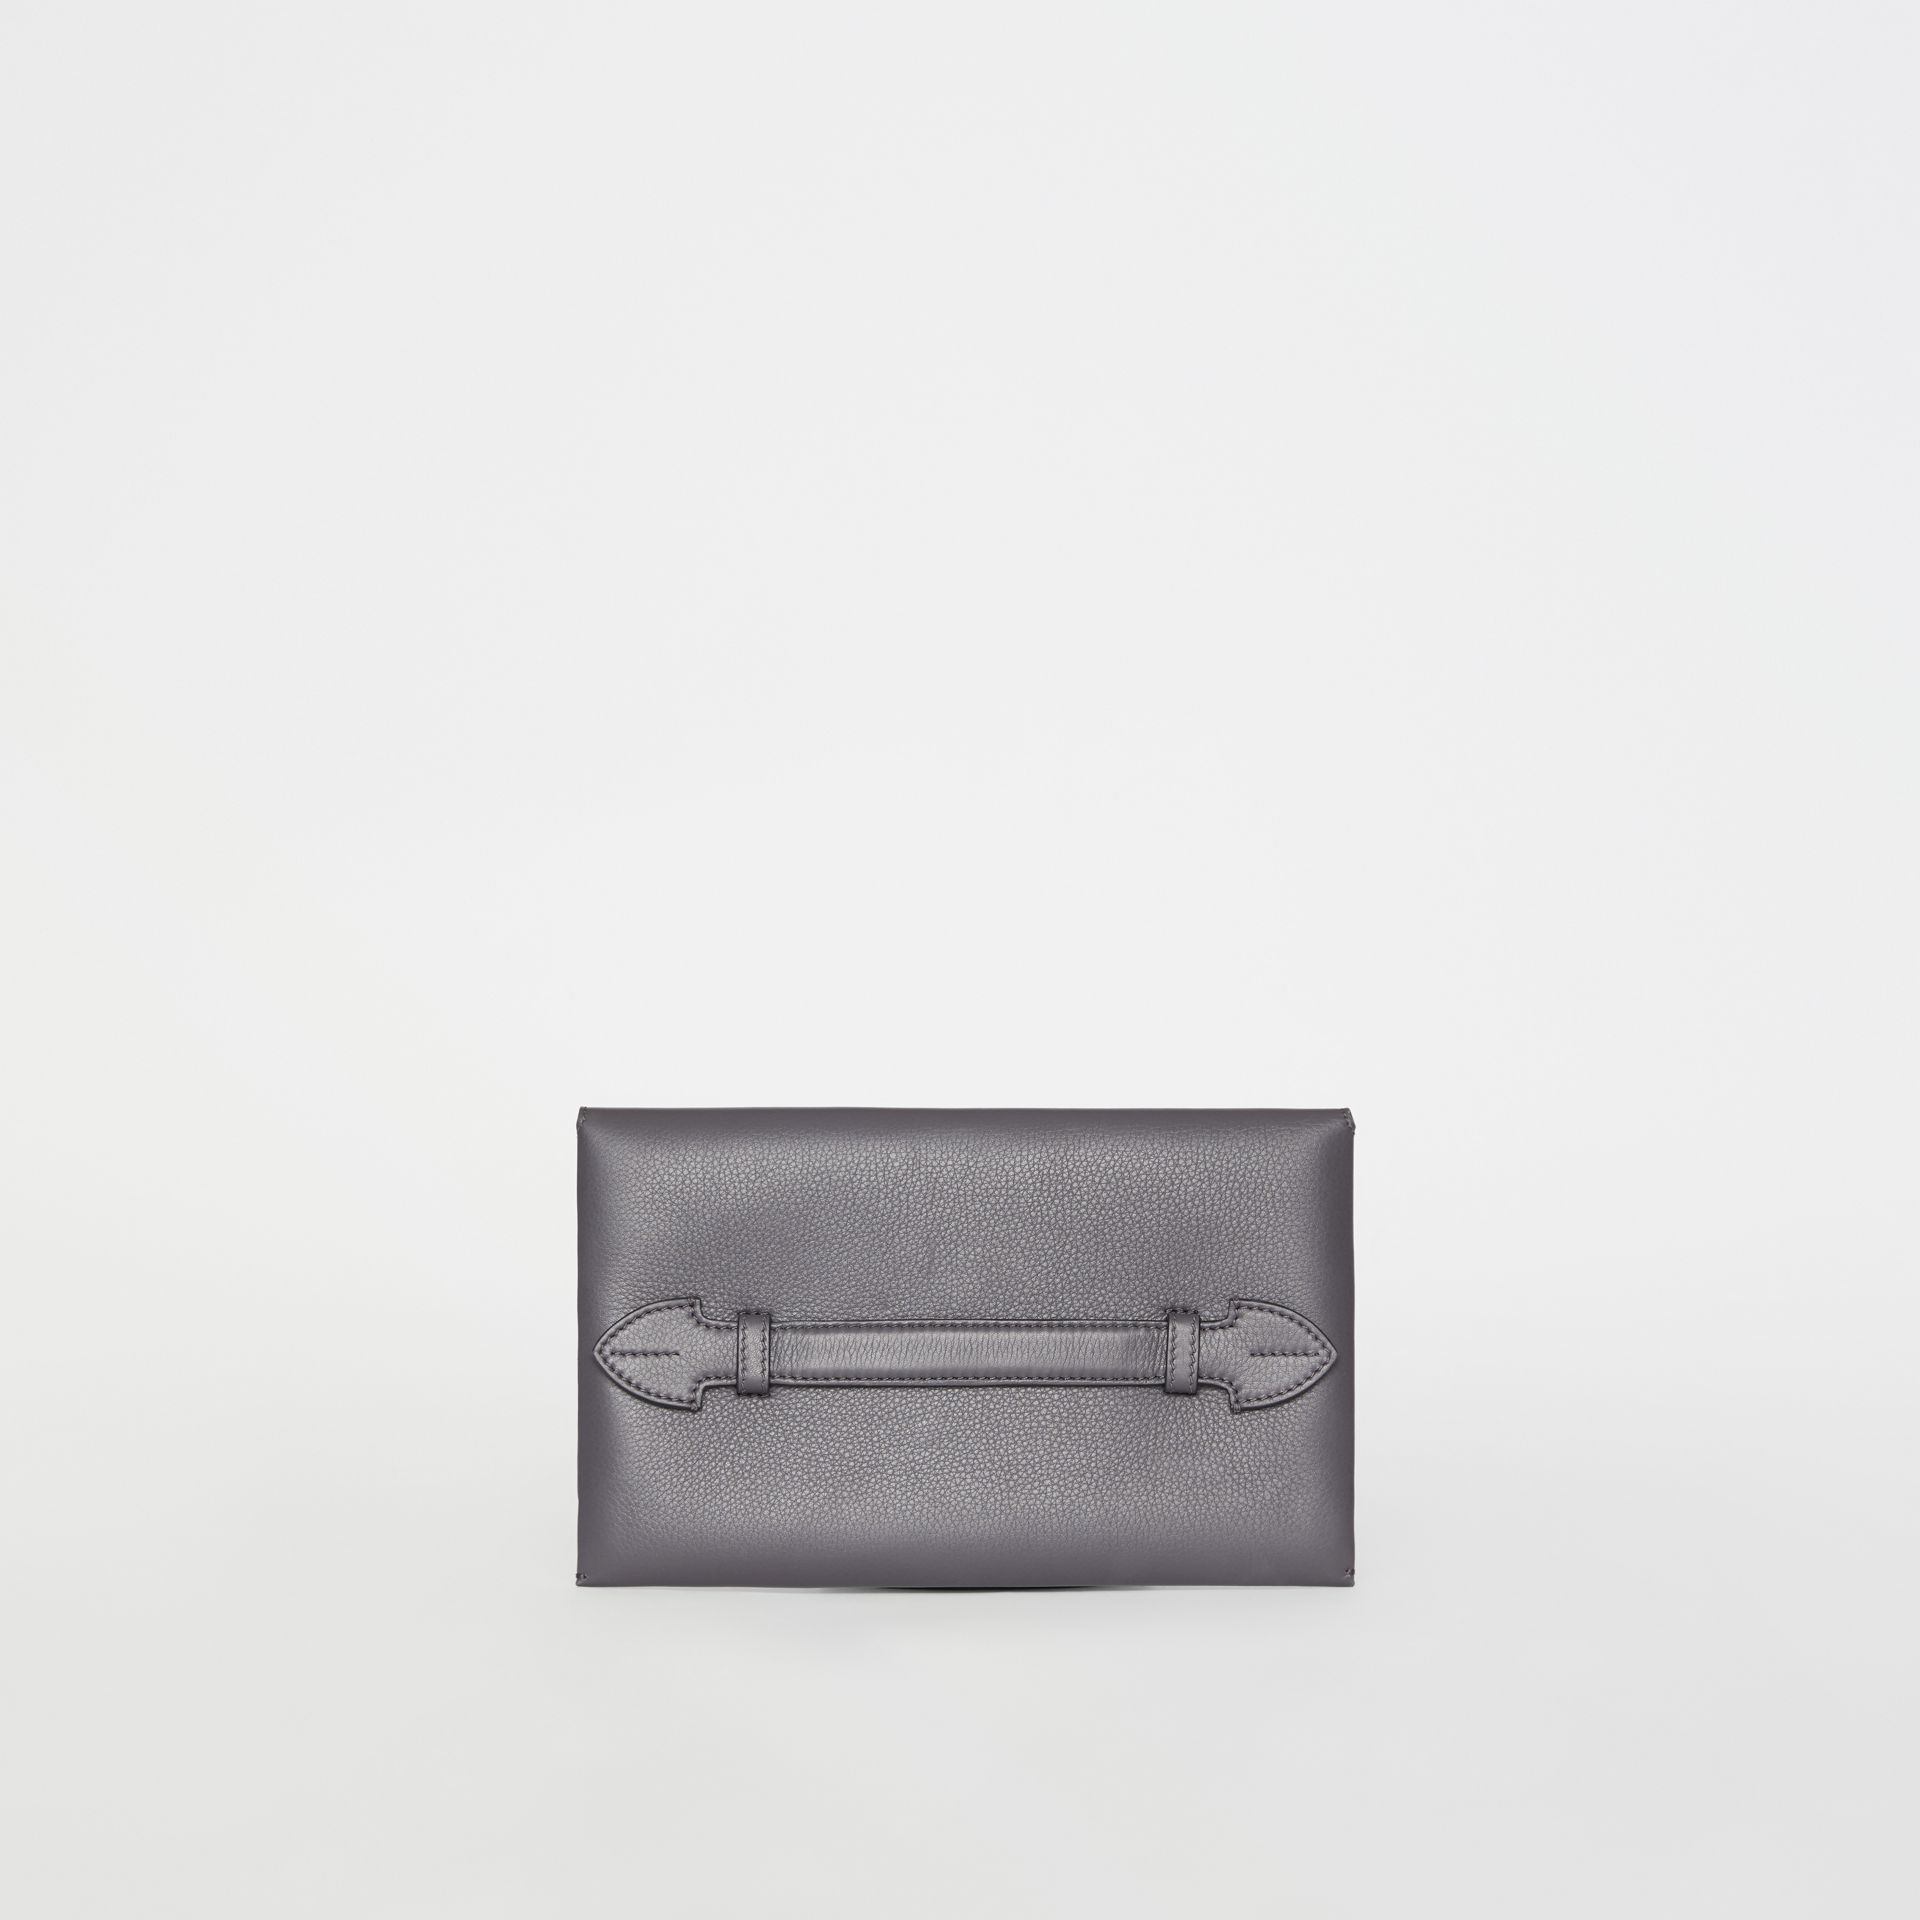 Clutch wristlet en cuir bicolore (Gris Anthracite) - Femme | Burberry - photo de la galerie 4